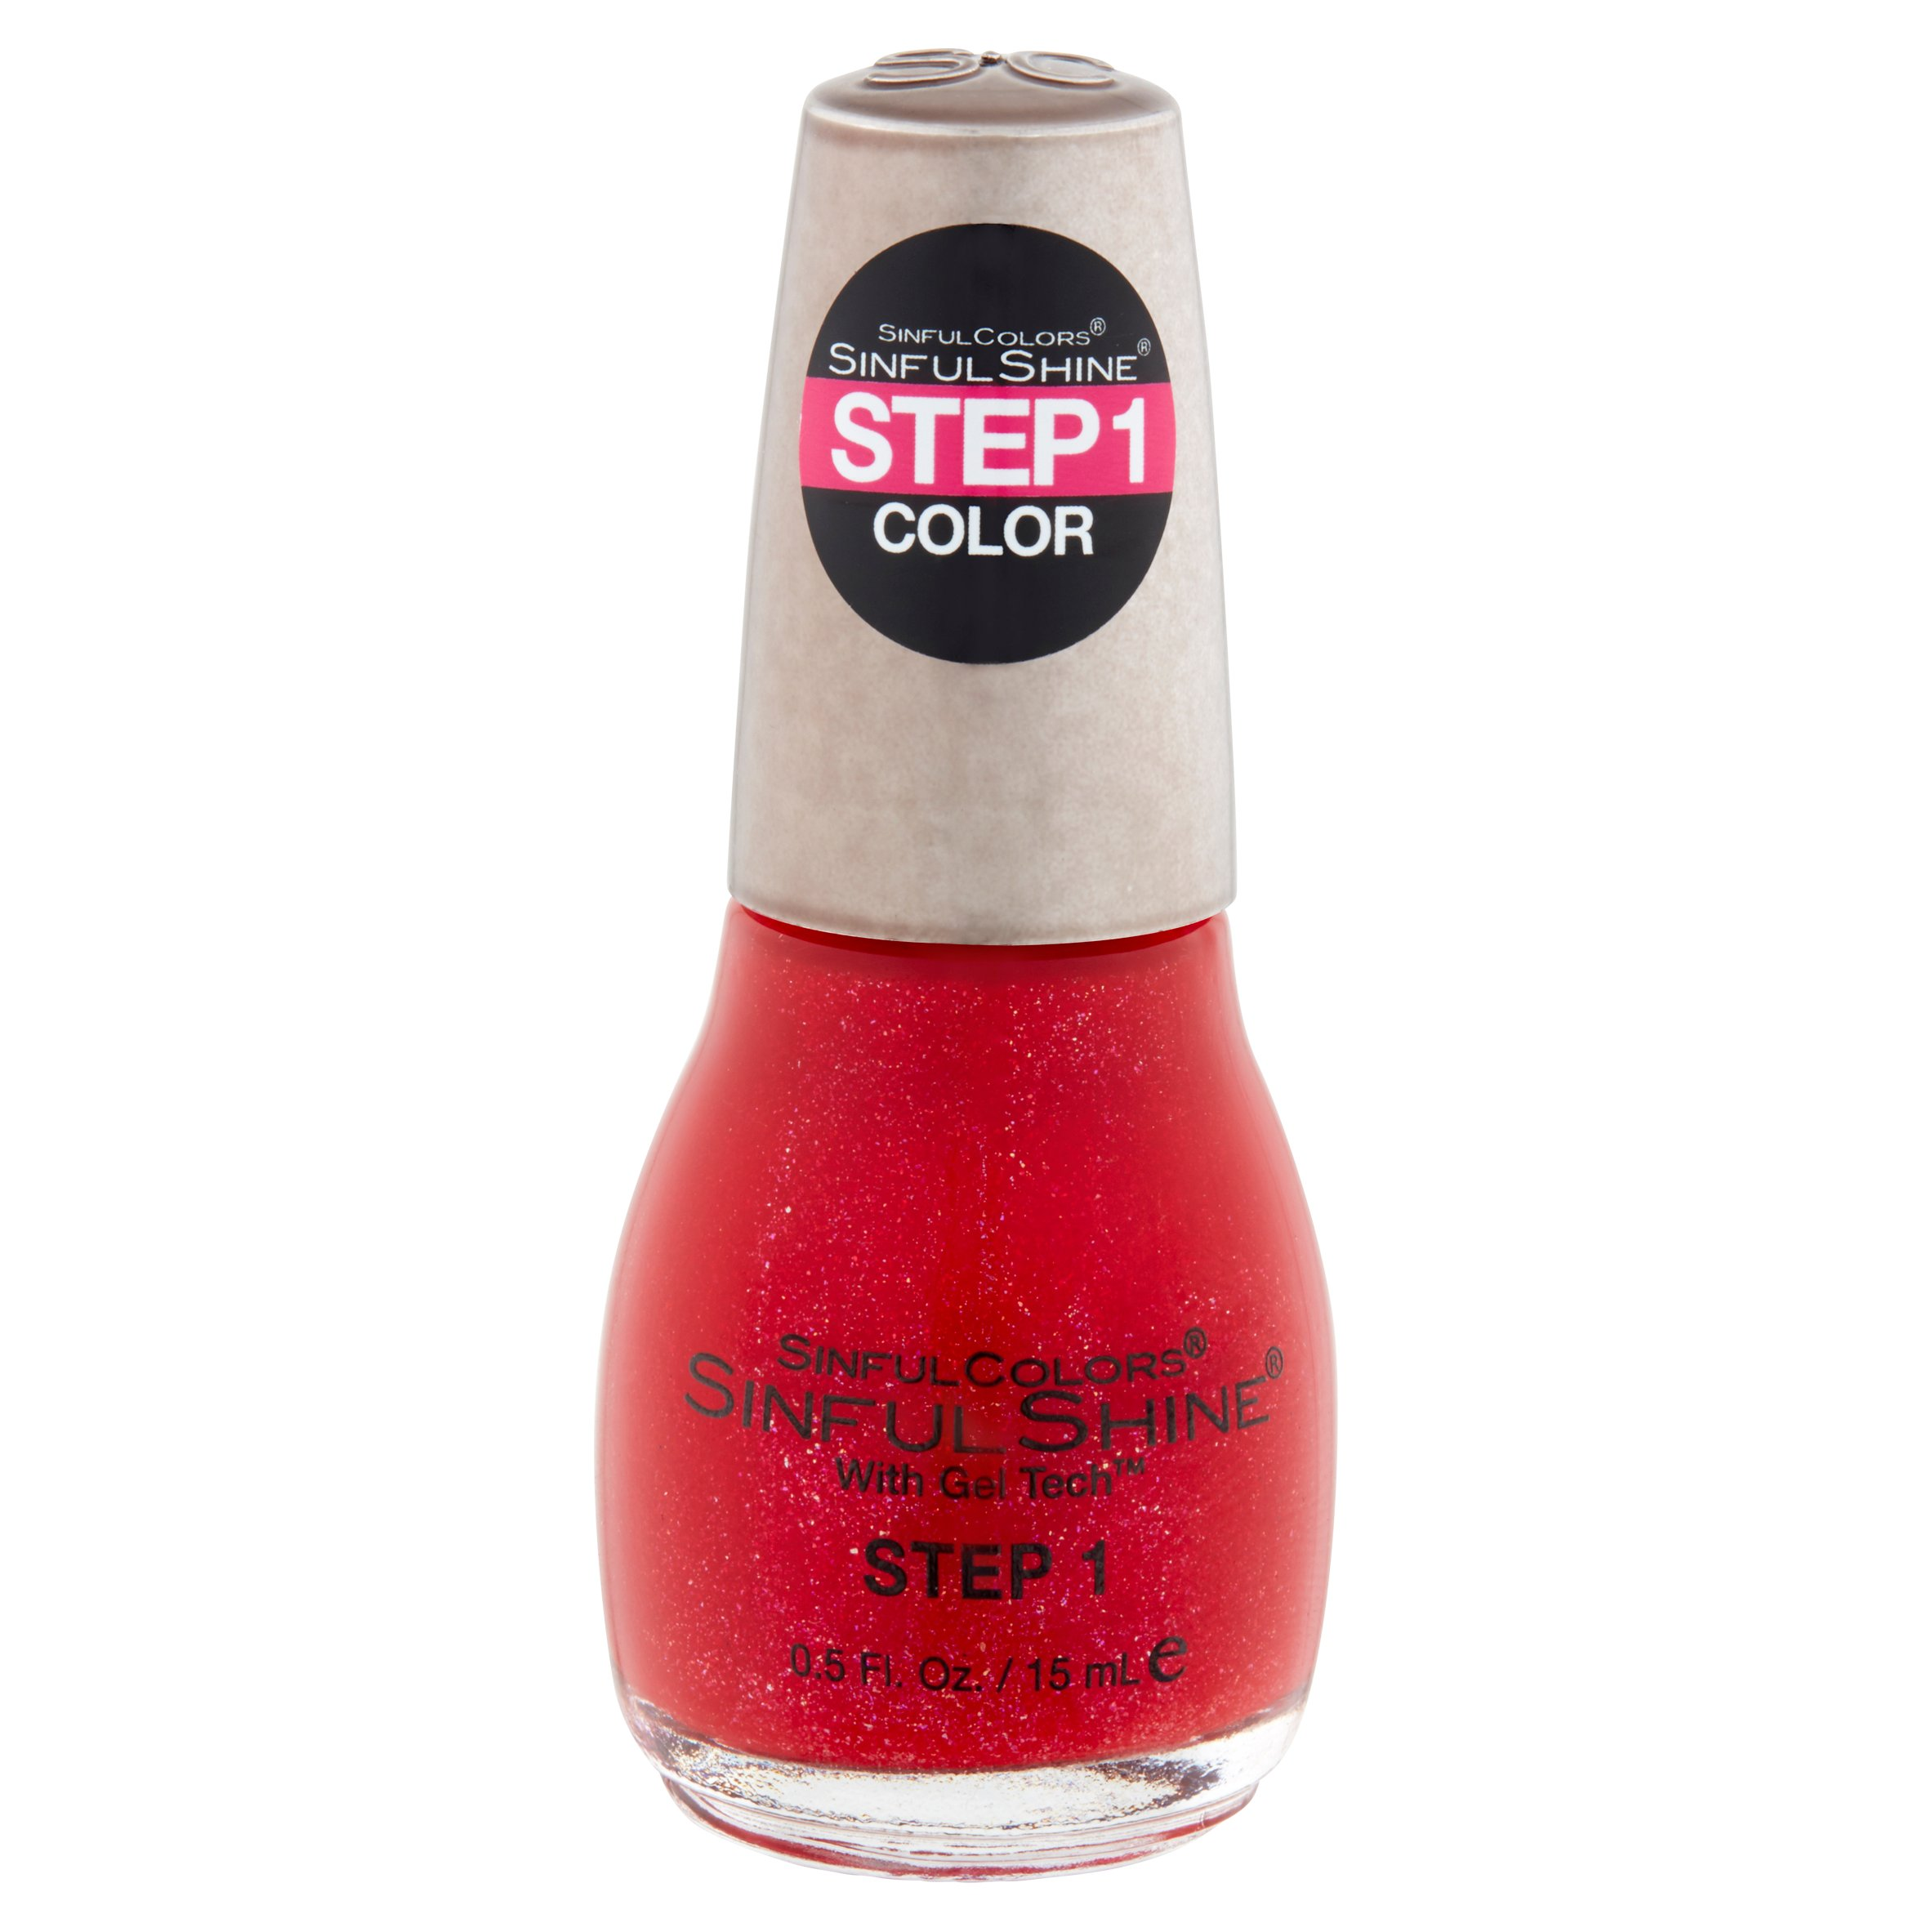 SinfulColors SinfulShine Step 2 Top Coat Nail Color, 0.5 fl oz SinfulColors SinfulShine Step 2 Top Coat Nail Color, 0.5 fl oz new picture